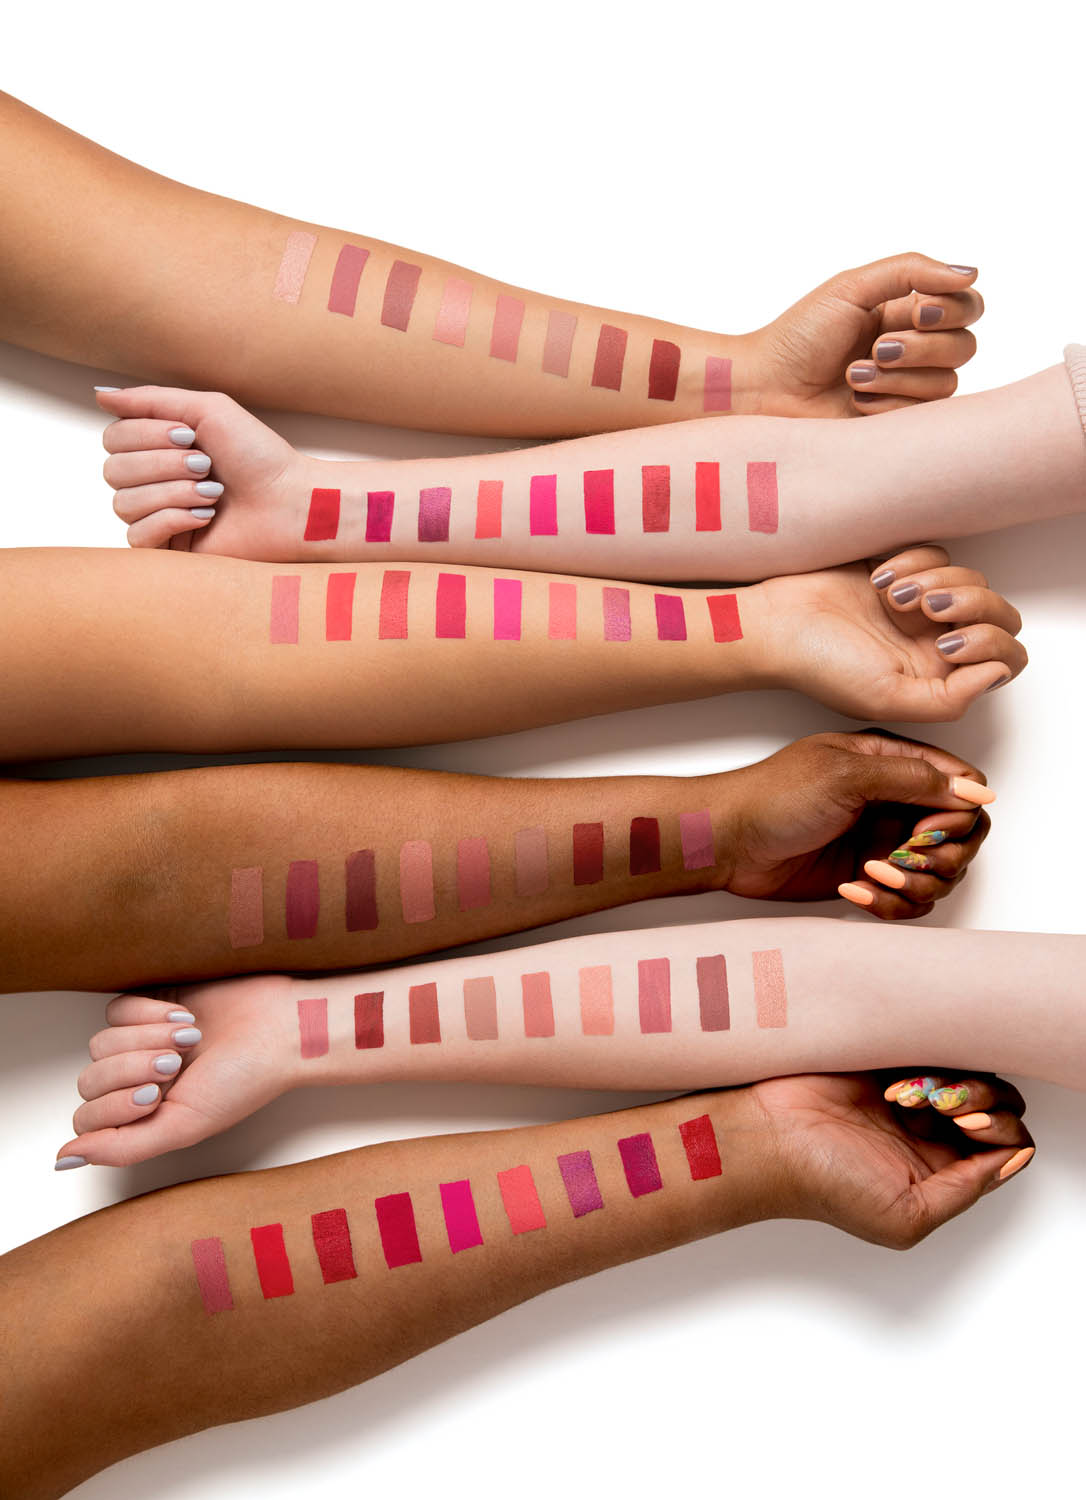 All the shades on different skin tones